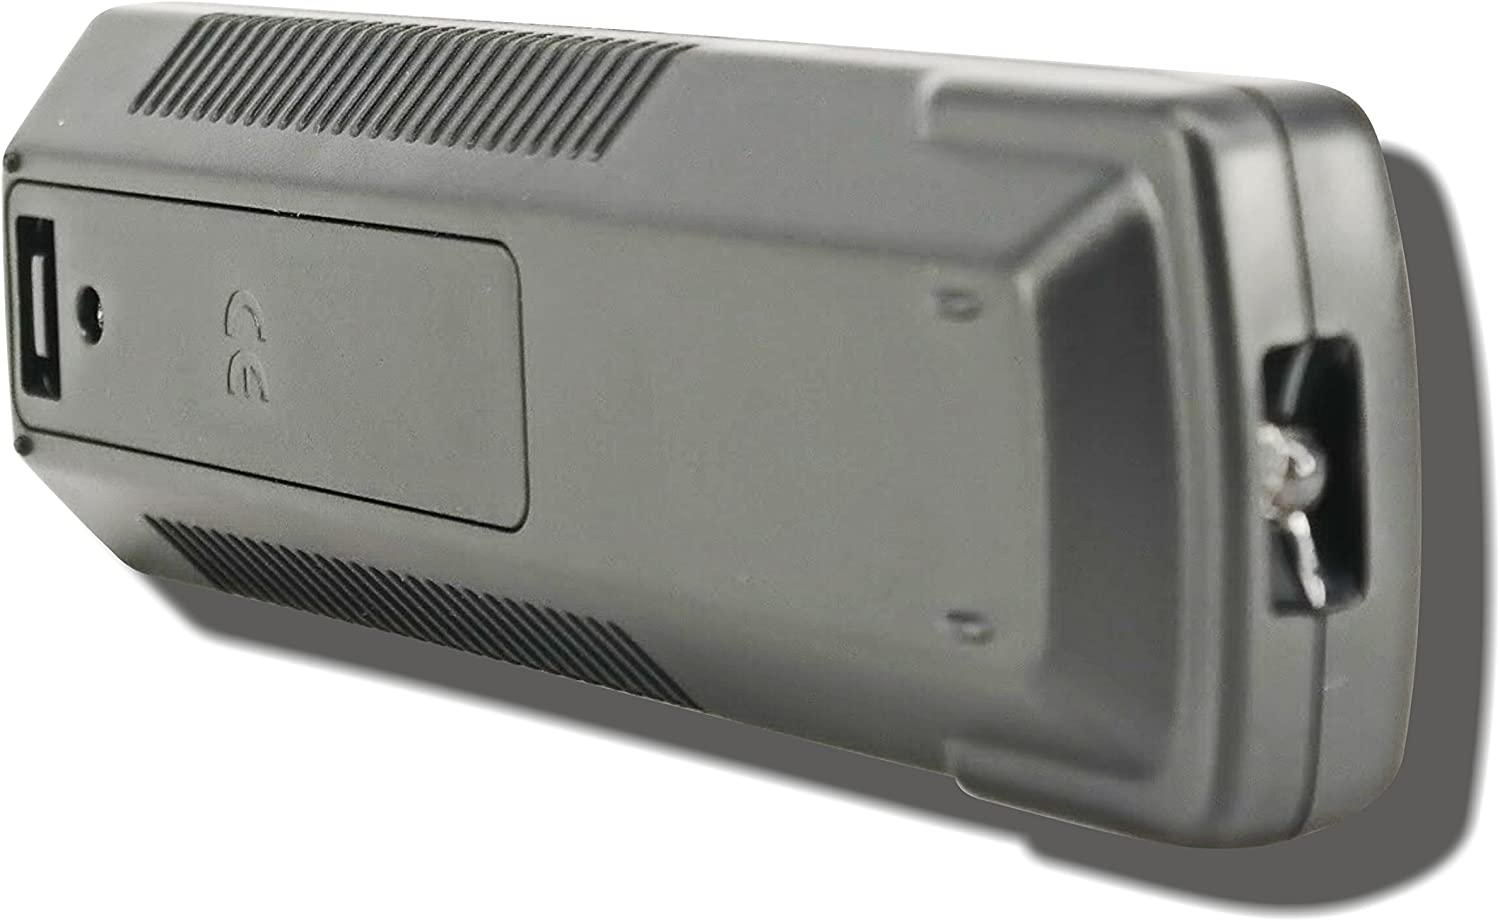 TeKswamp Video Projector Remote Control for Sanyo PLC-XU73